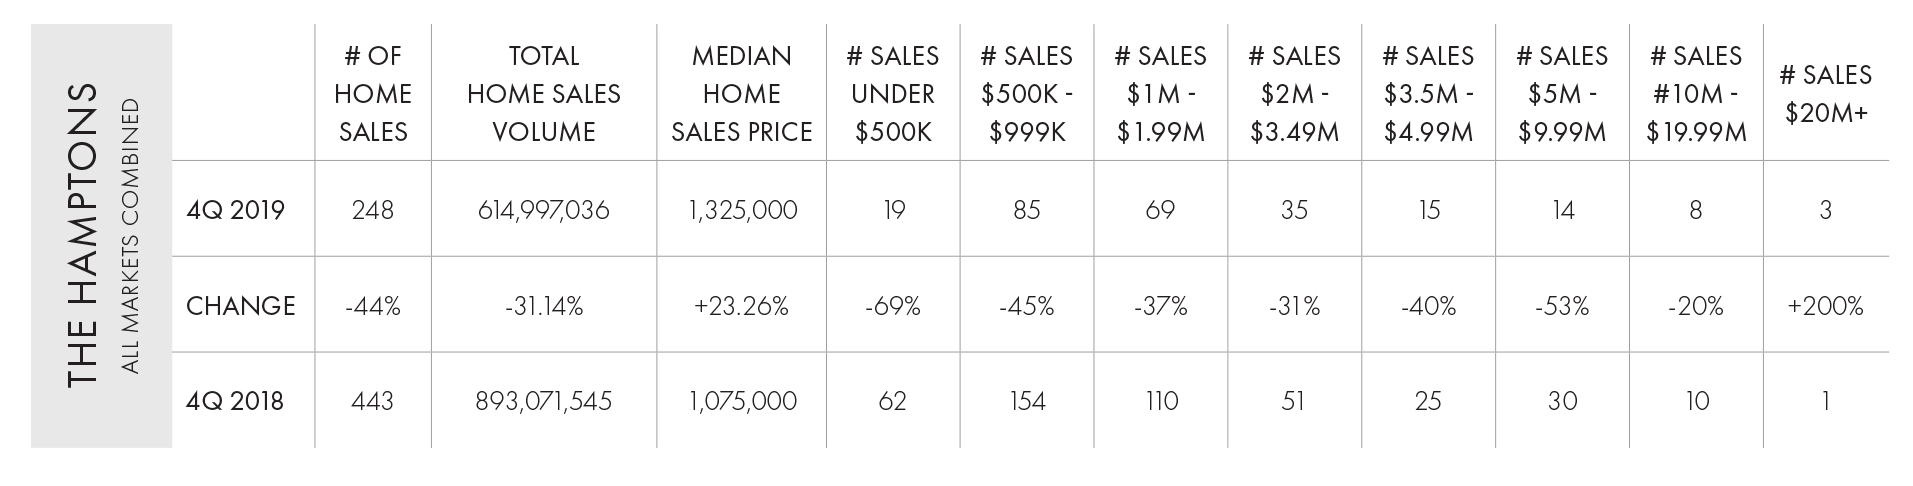 Hamptons 4Q 2020 Home Sales Market Report